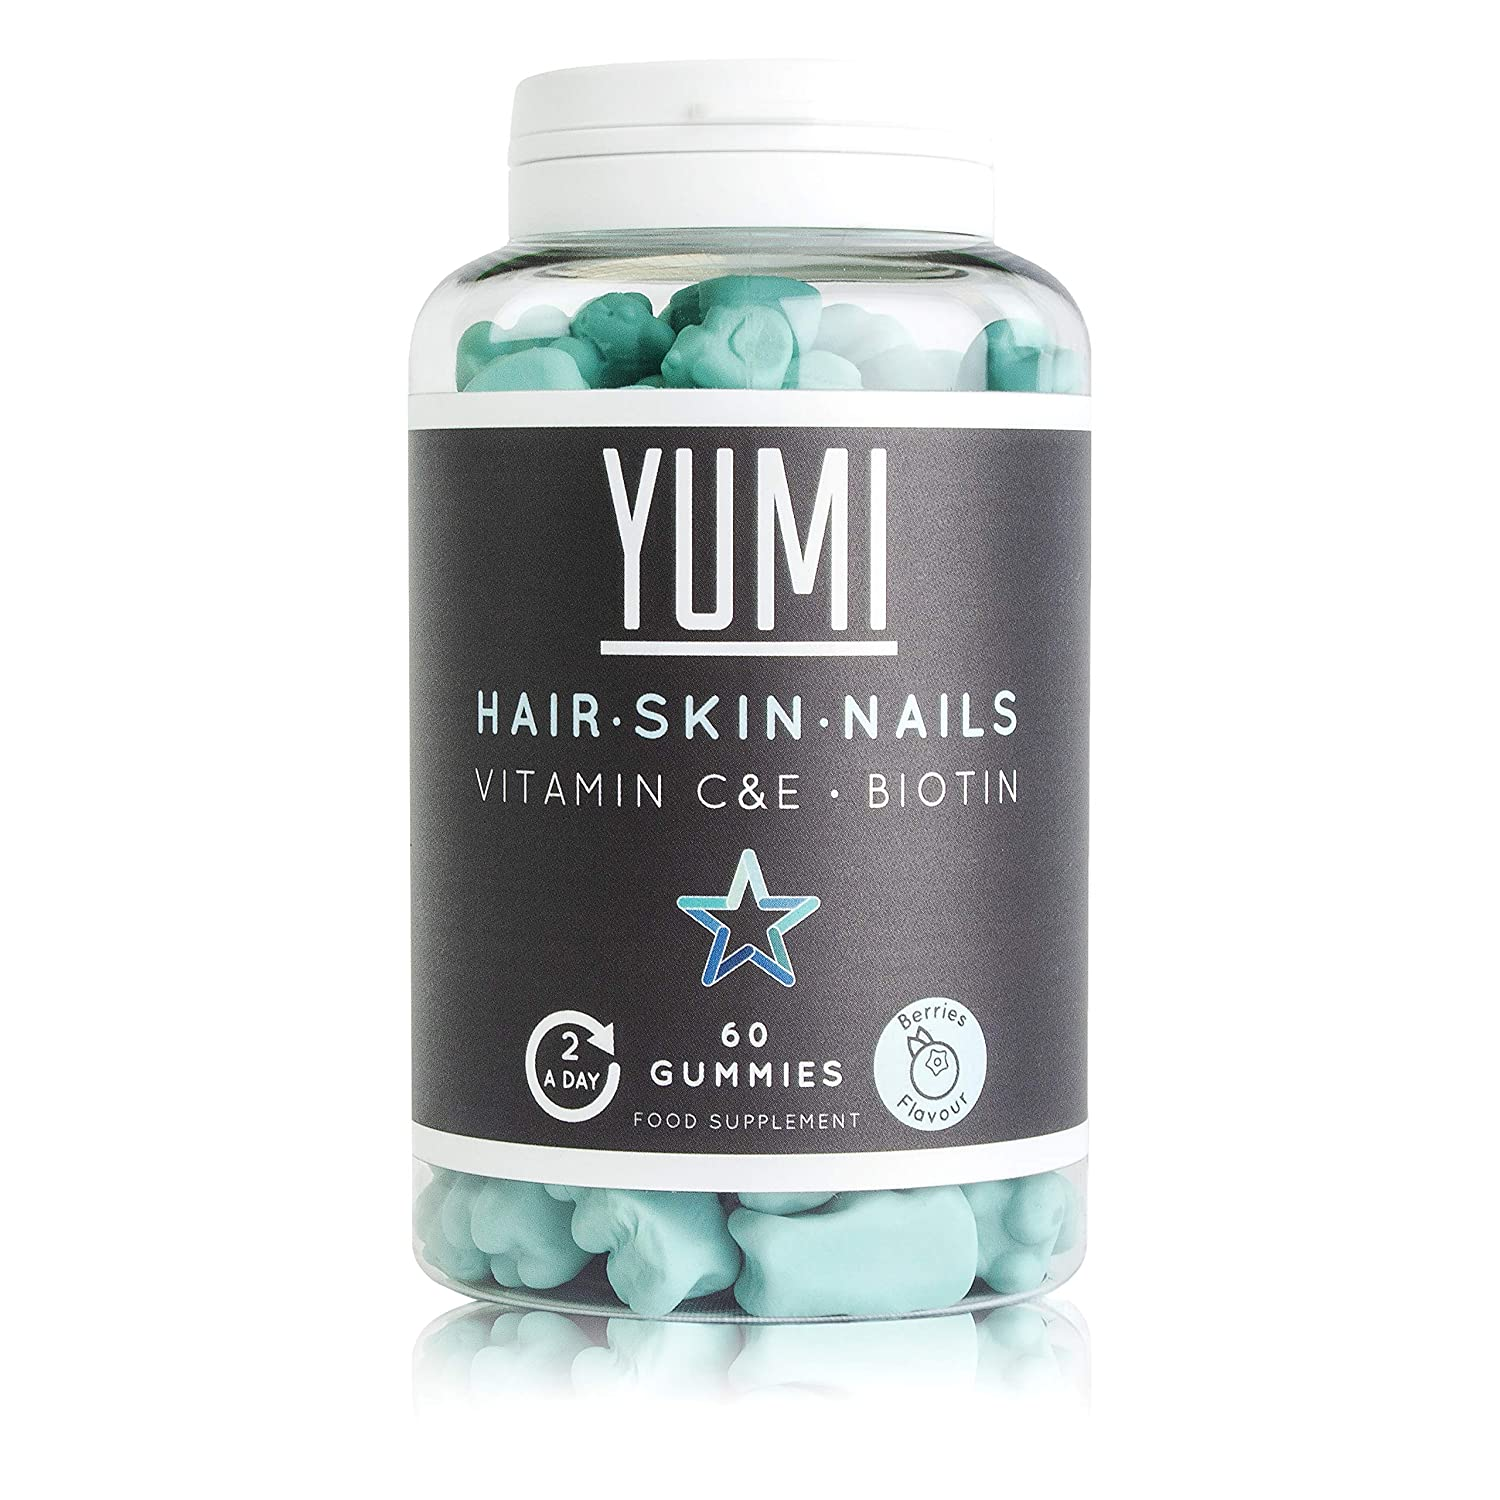 YUMI - Biotin Hair Growth Supplement 5000mcg with Vitamin C & E | Hair, Skin and Nails Supplement - Effective Hair Vitamins for Beard Growth and Hair Care & Skincare | 60 Vegan Vitamin Gummies |